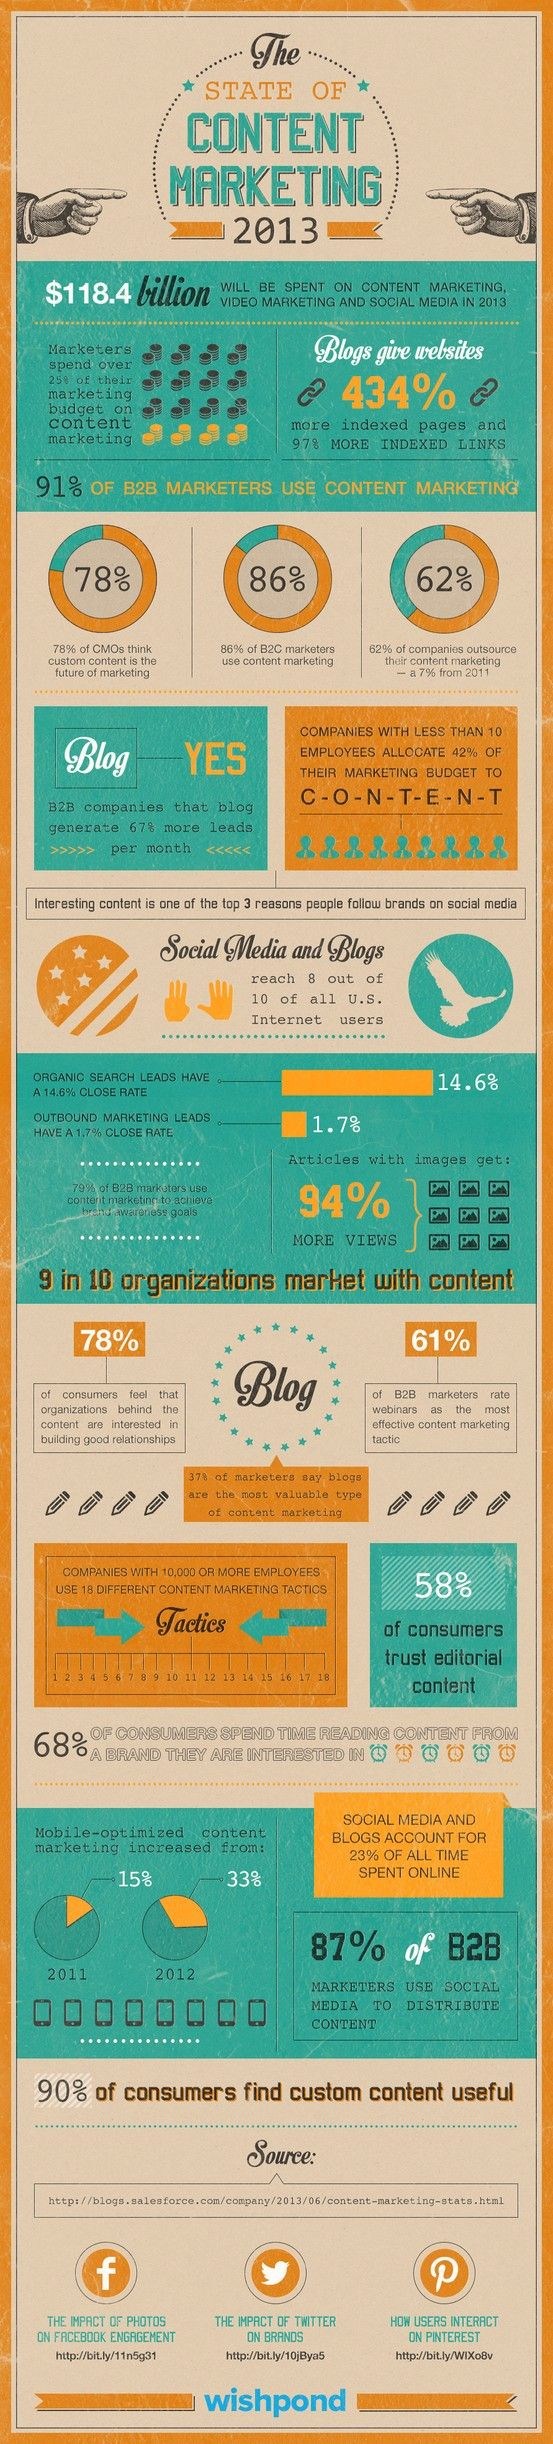 State of Content Marketing 2013 [Infographic]